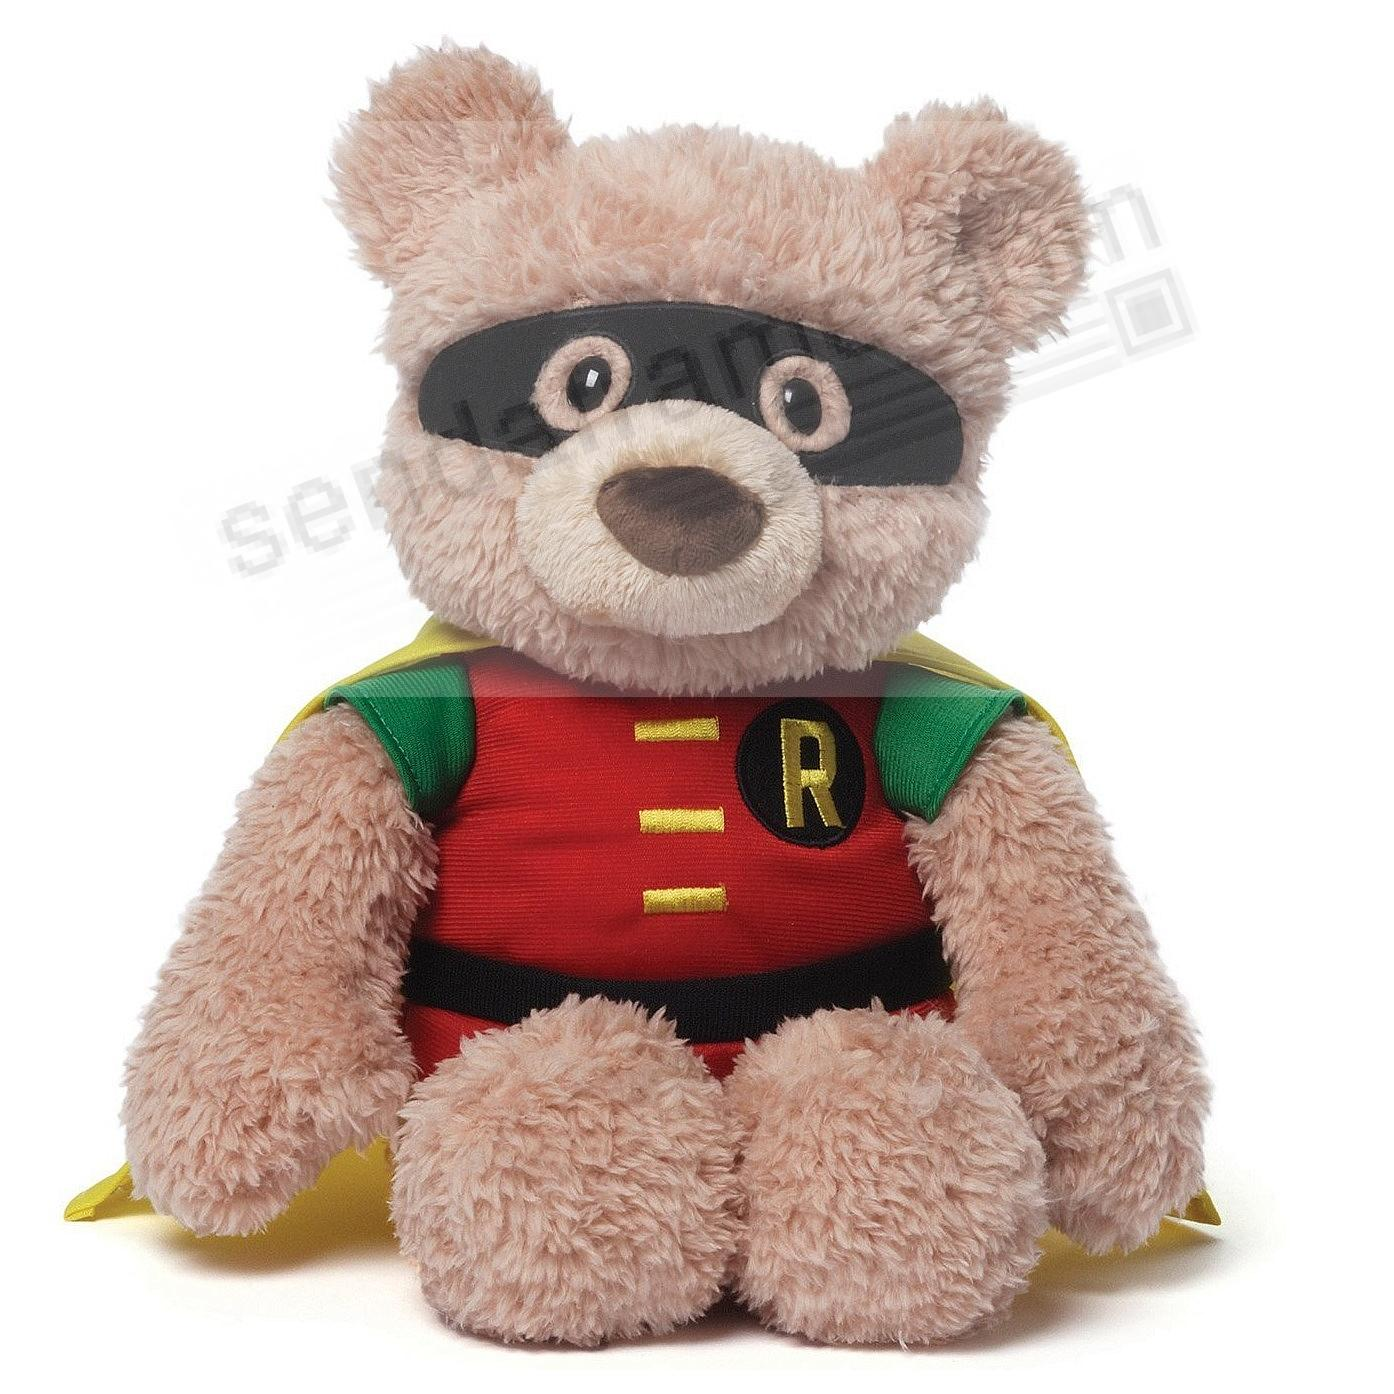 DC Comics Robin® 12-inch plush bear toys by Gund®